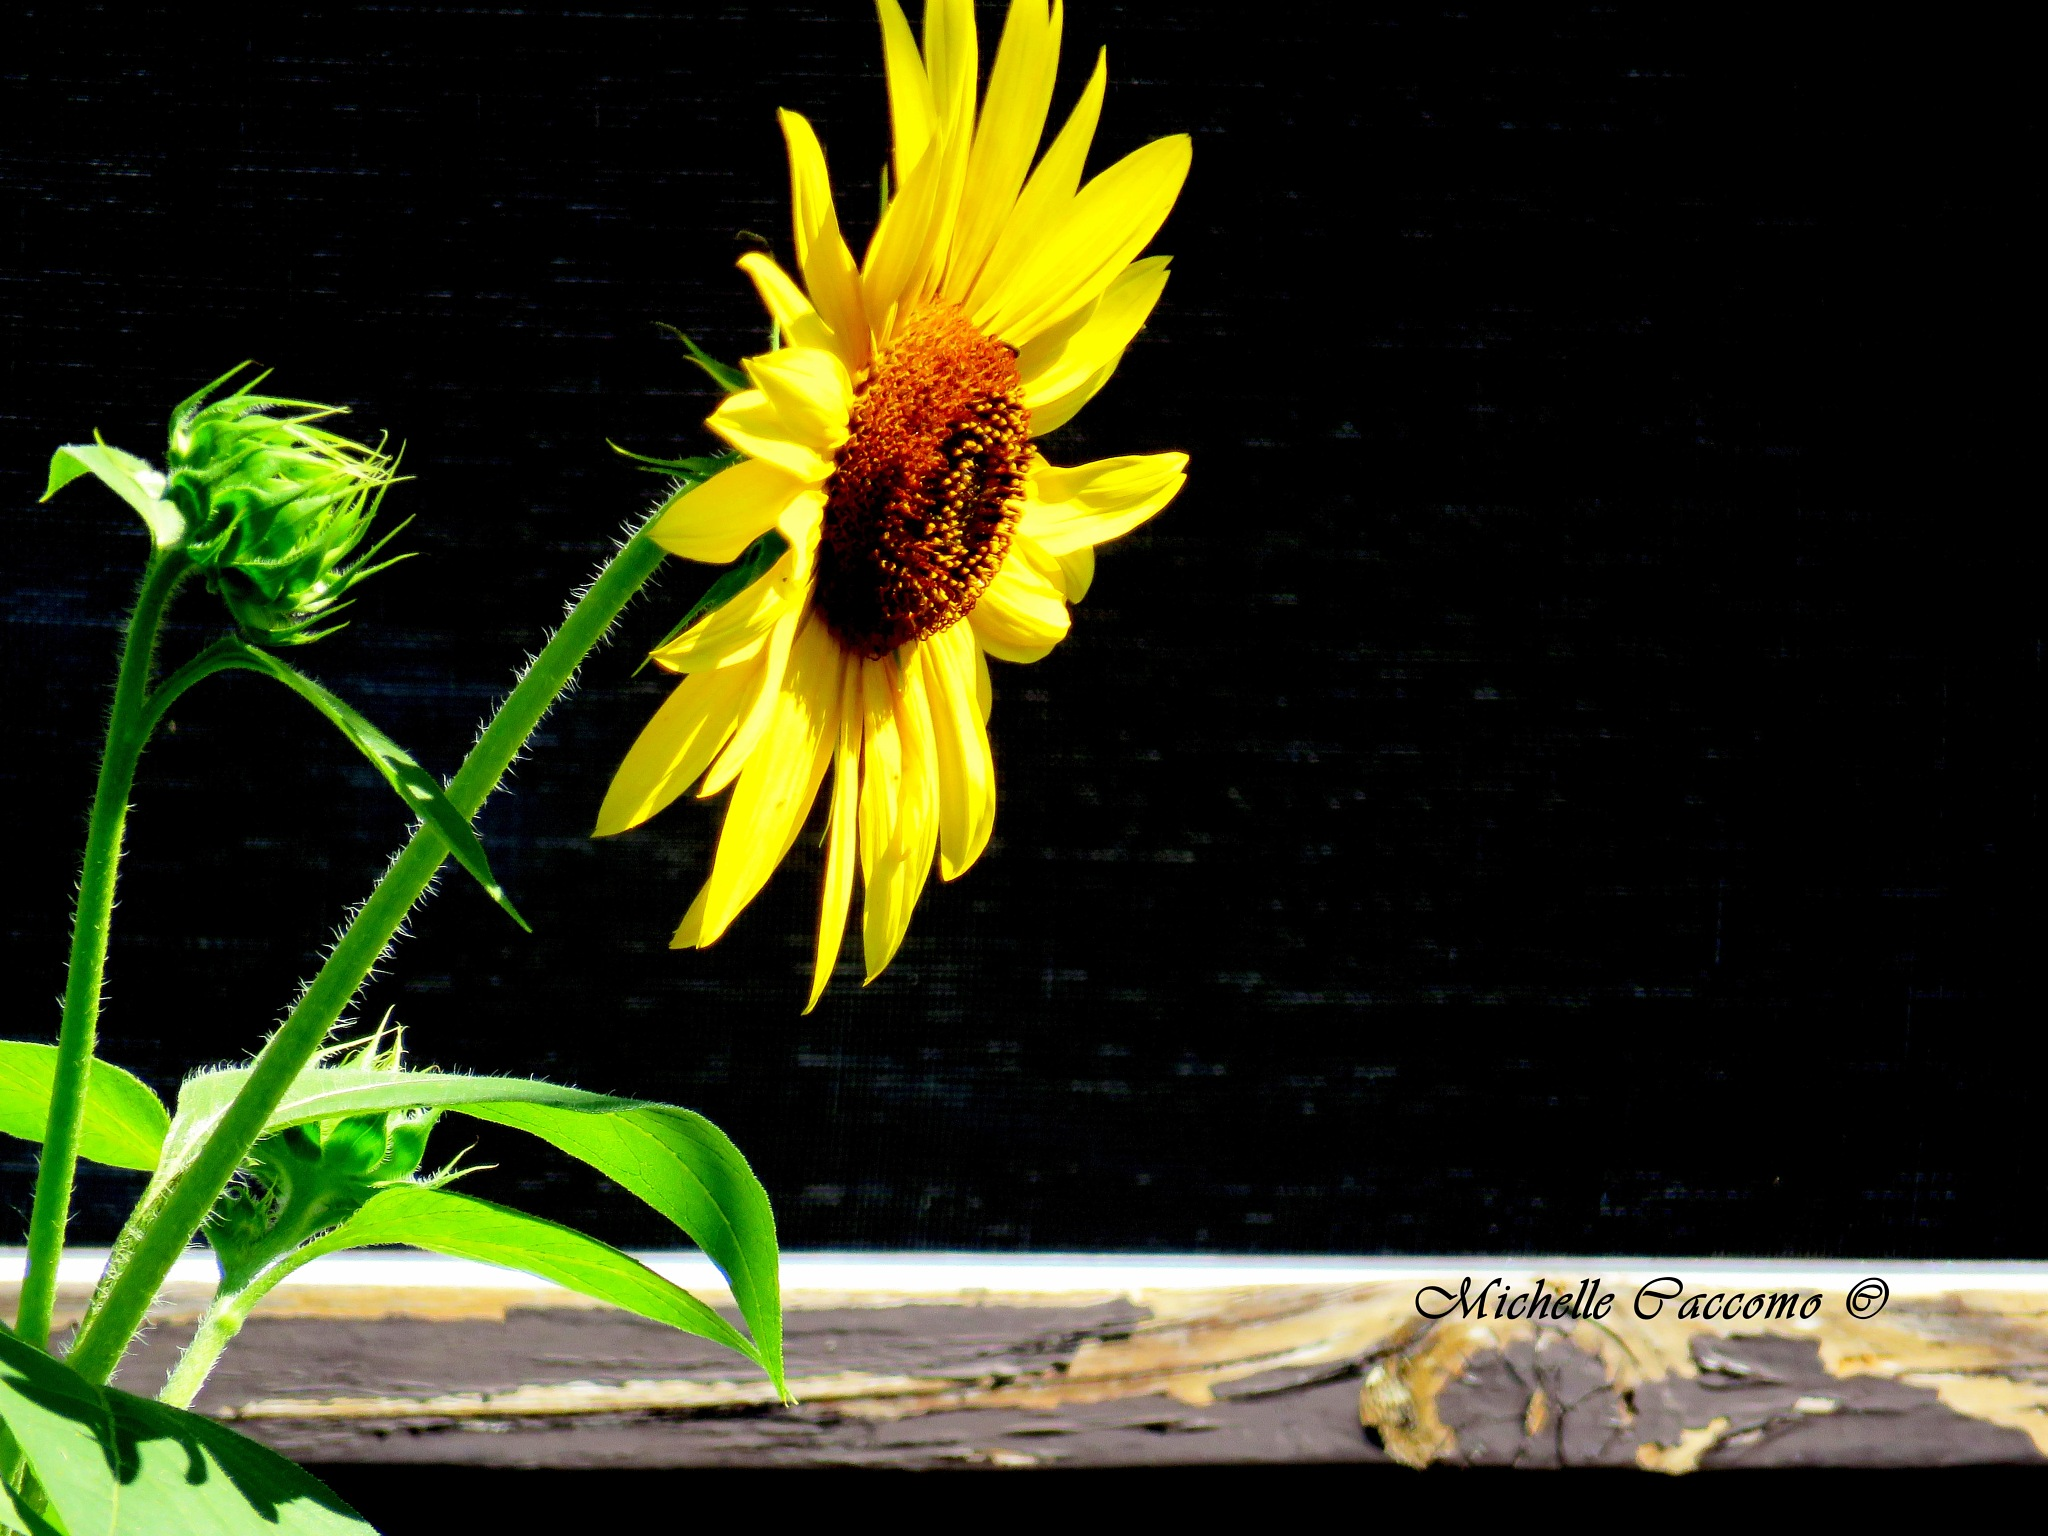 Cheerful Sunflower by Michelle Caccomo